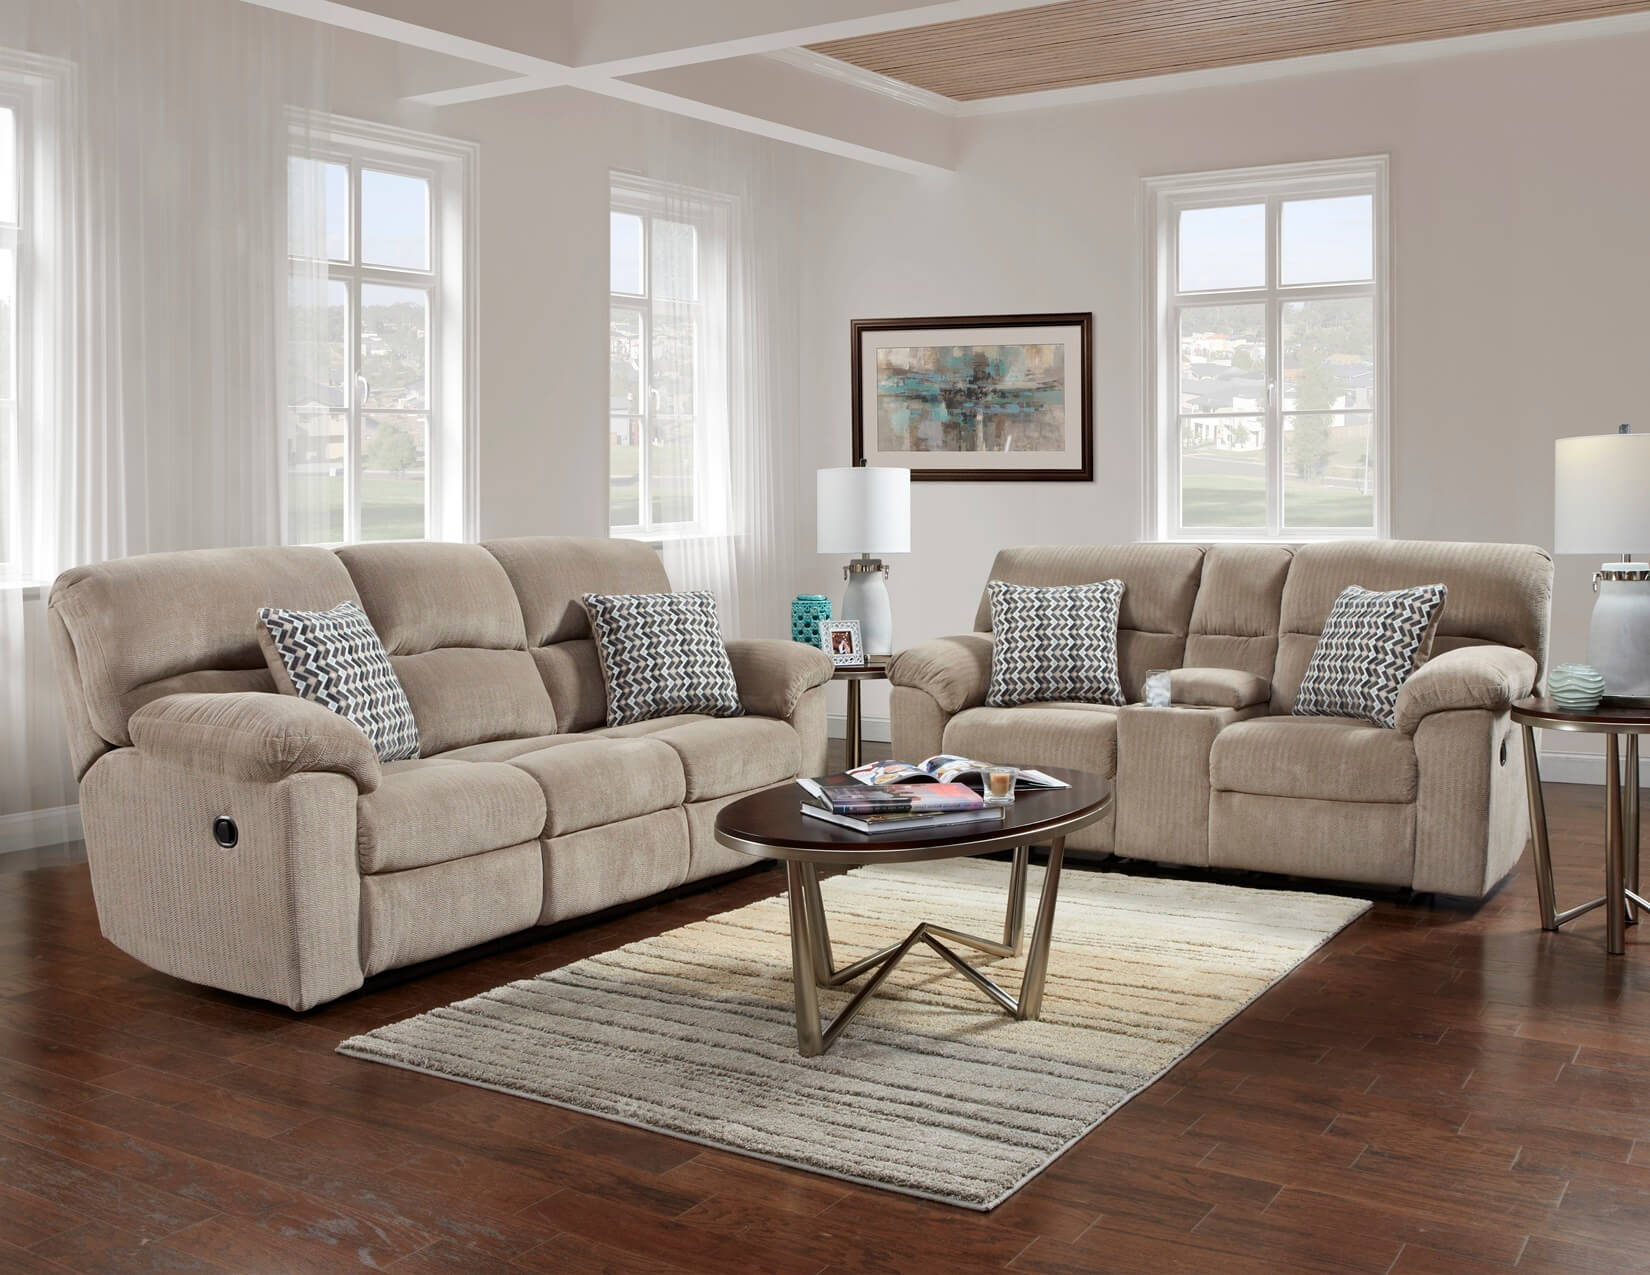 Chevron Seal Reclining Sofa and Loveseat Set & Chevron Seal Reclining Sofa and Loveseat | Reclining Living Room Sets islam-shia.org